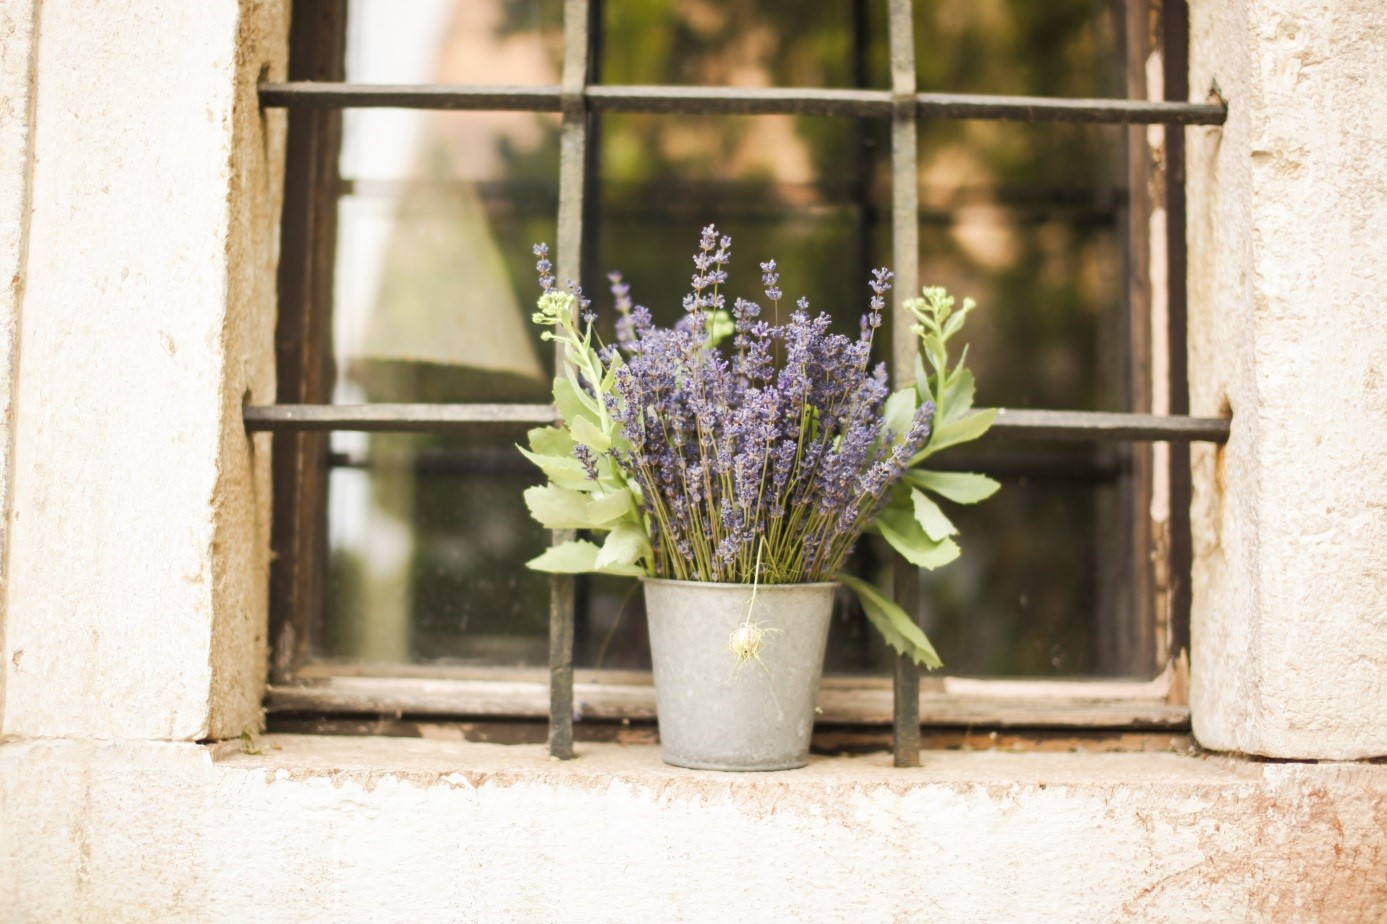 Lavender in an old window